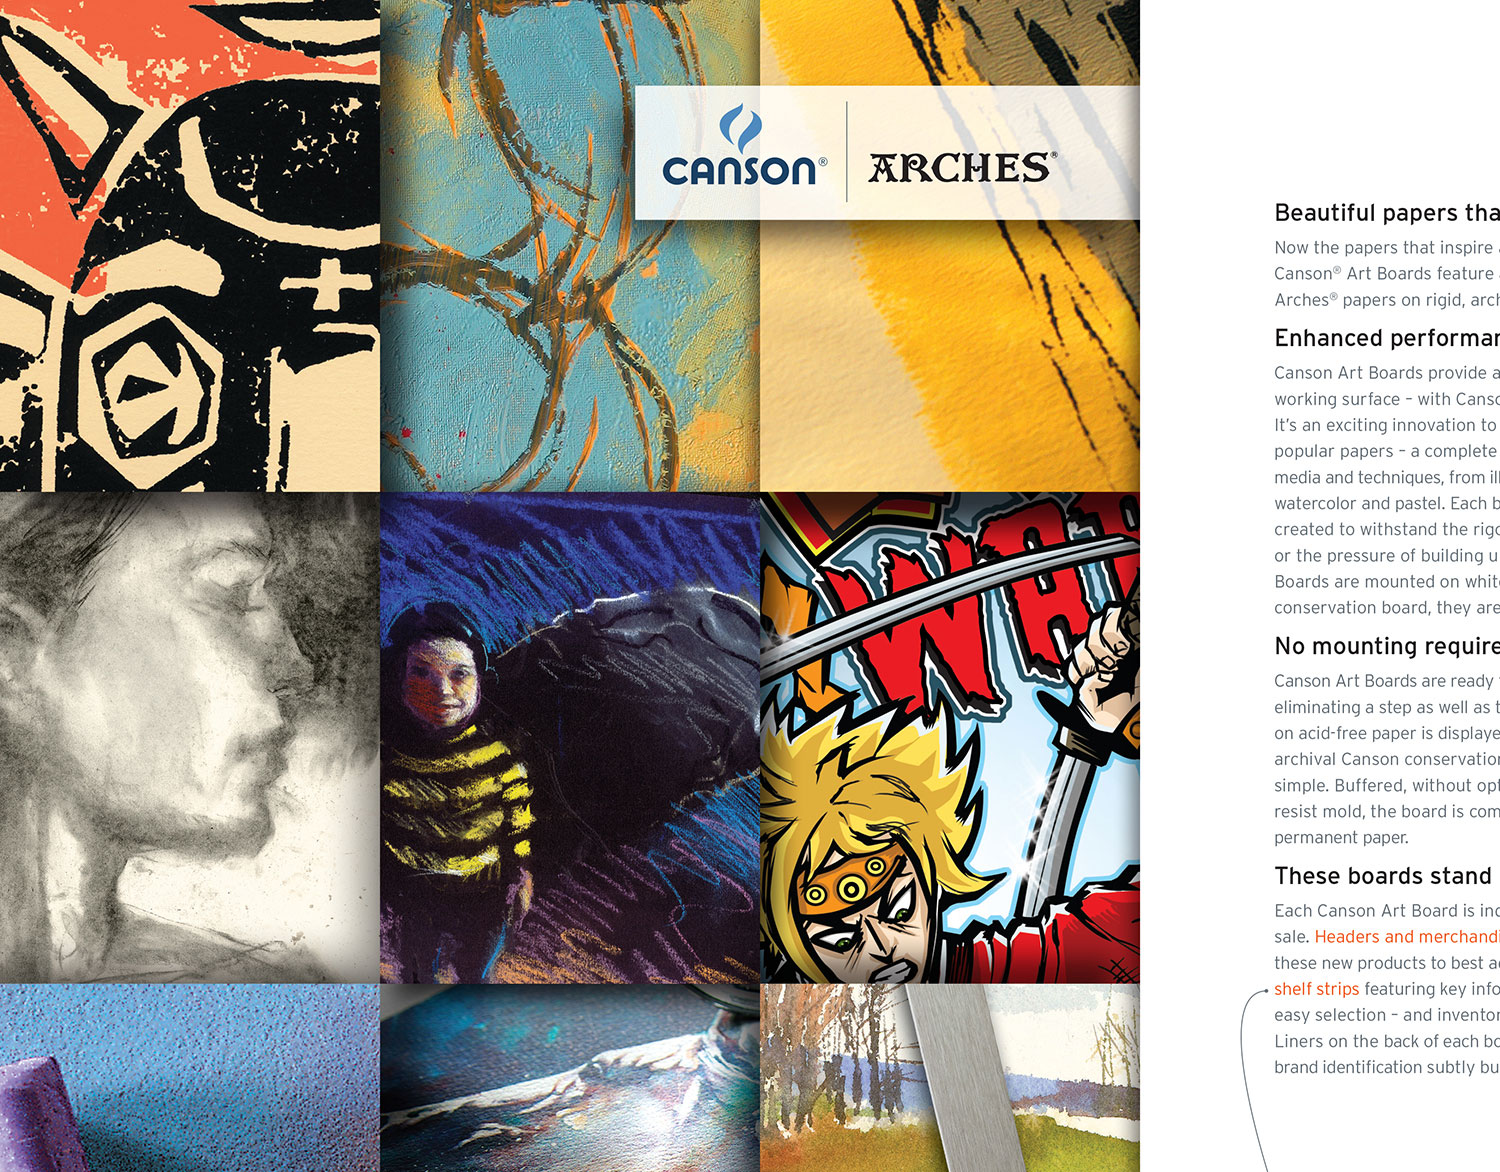 CANSON-ART-BOARD-PADS-BROCHURE-SPREAD-SLIDE.jpg